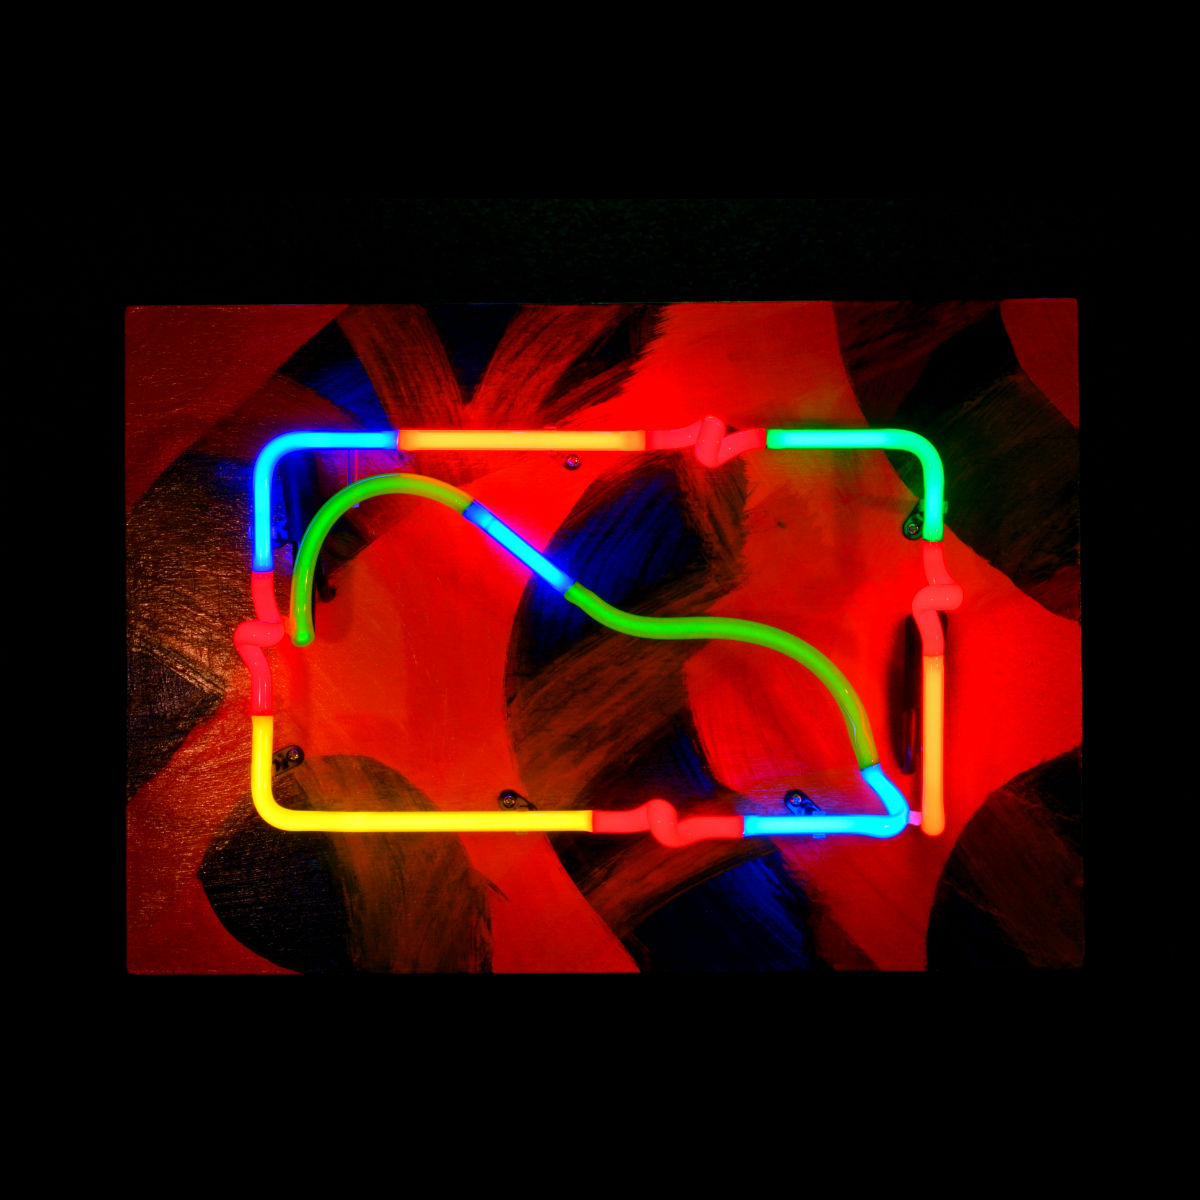 Tropical Neon Light Art by John Barton - Famous USA Neon Glass Artist - BartonNeonMagic.com